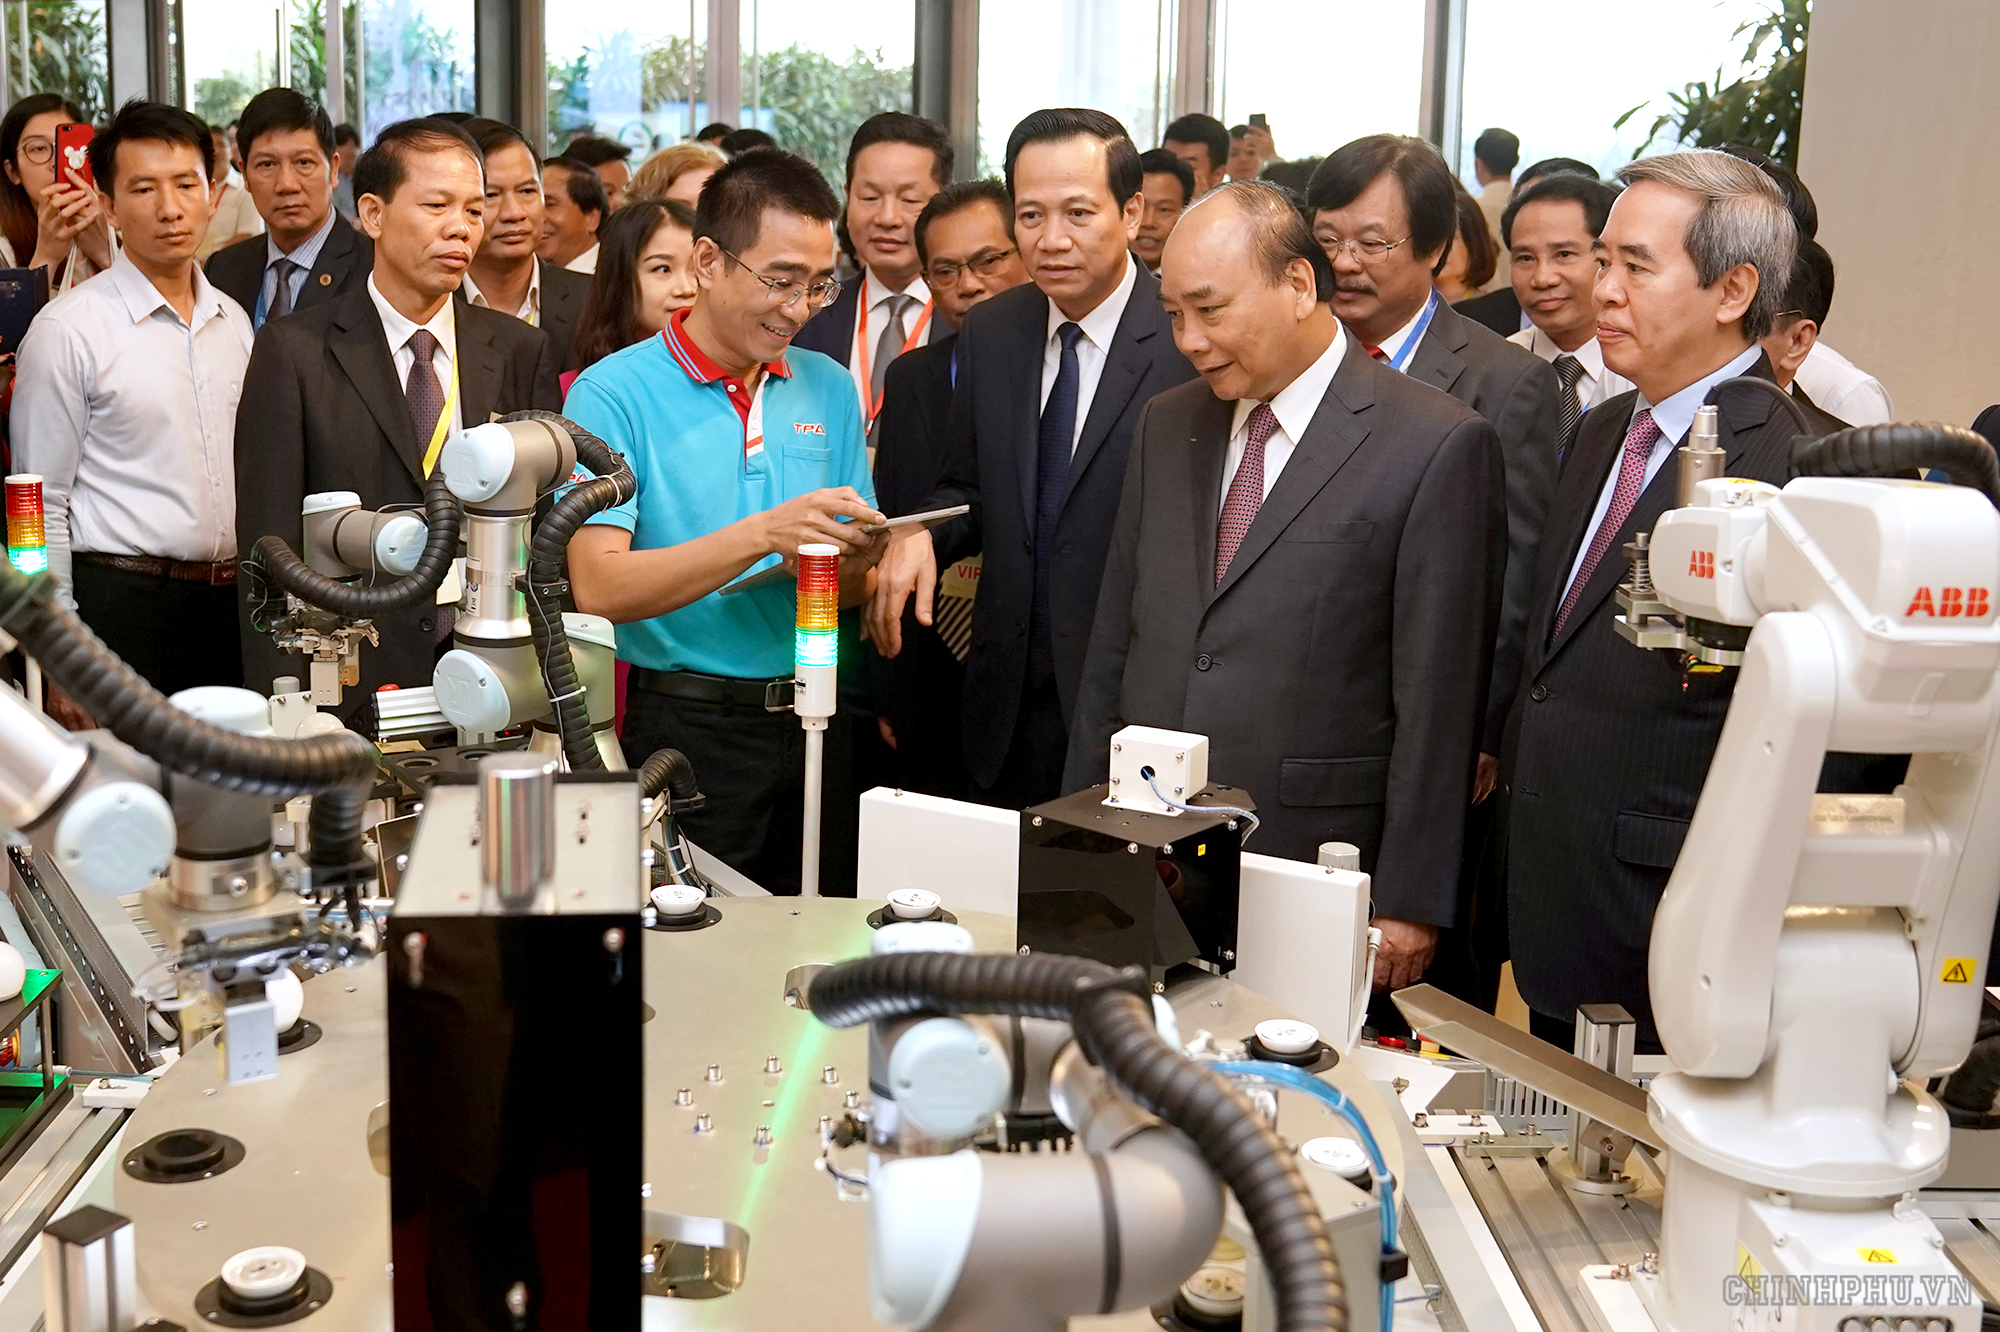 The Prime Minister figures out measures to improve Vietnamese labourers' skills